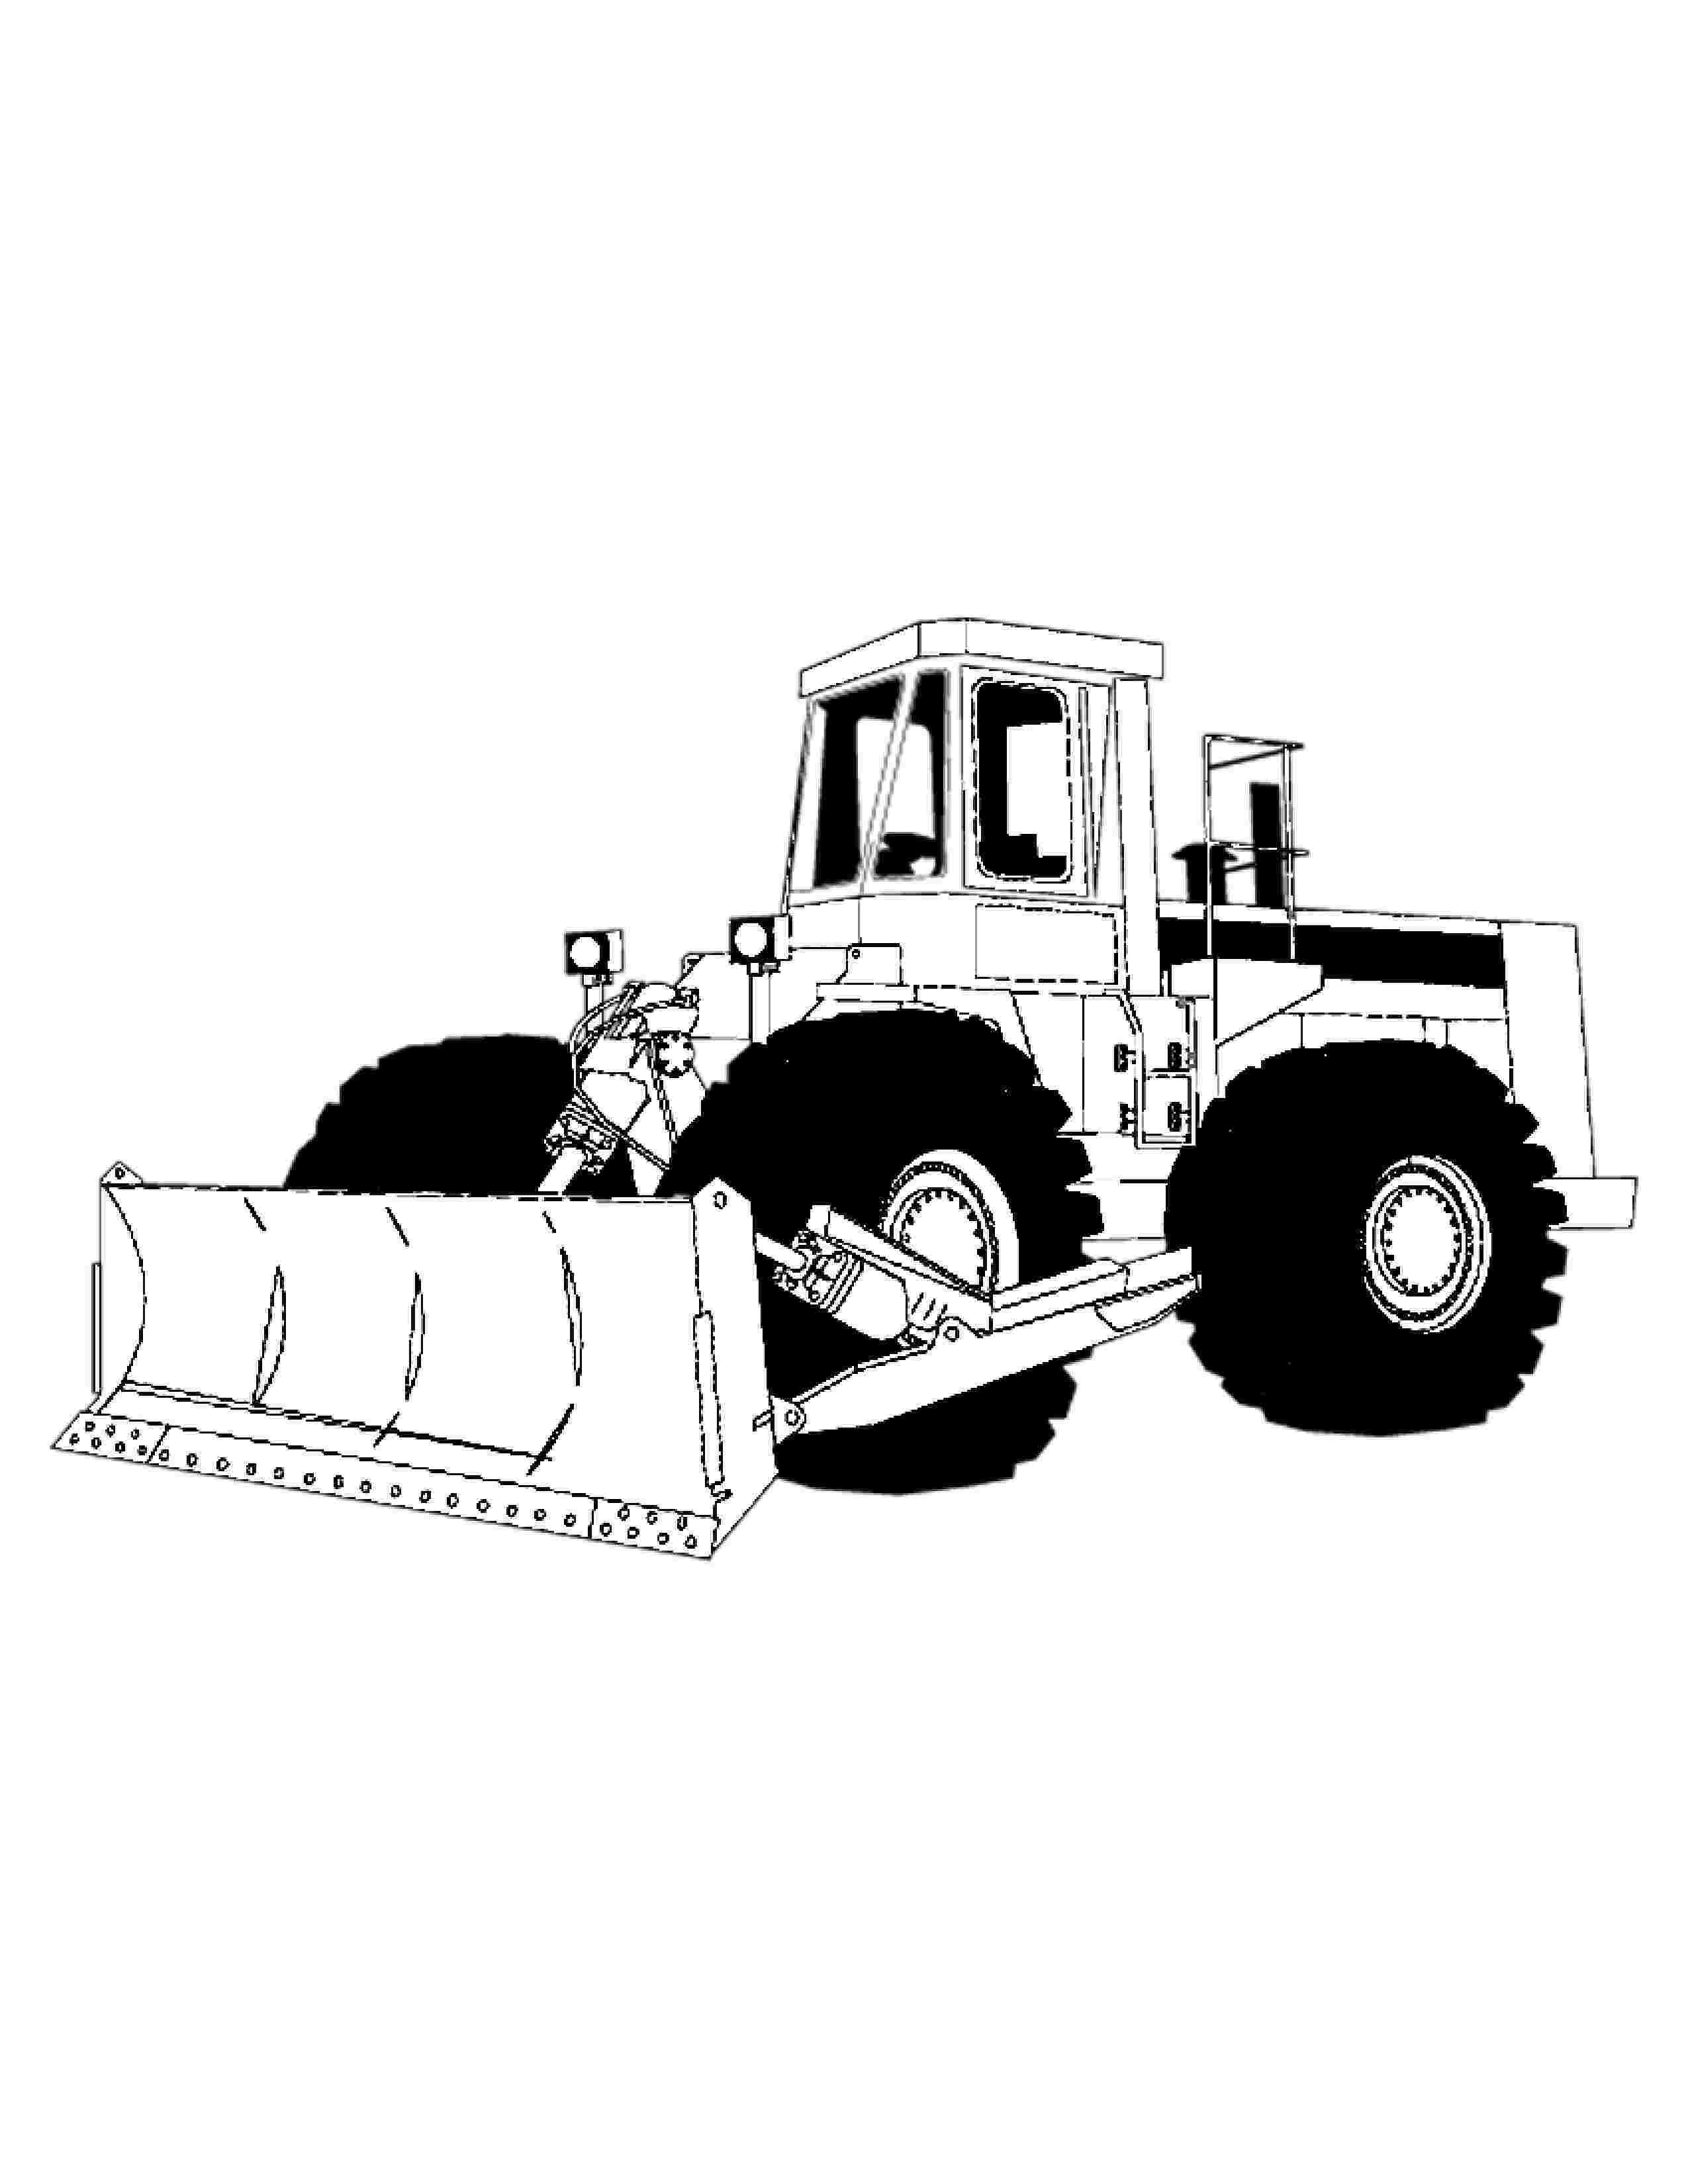 construction equipment coloring pages construction machinery coloring pages coloring pages to equipment construction coloring pages